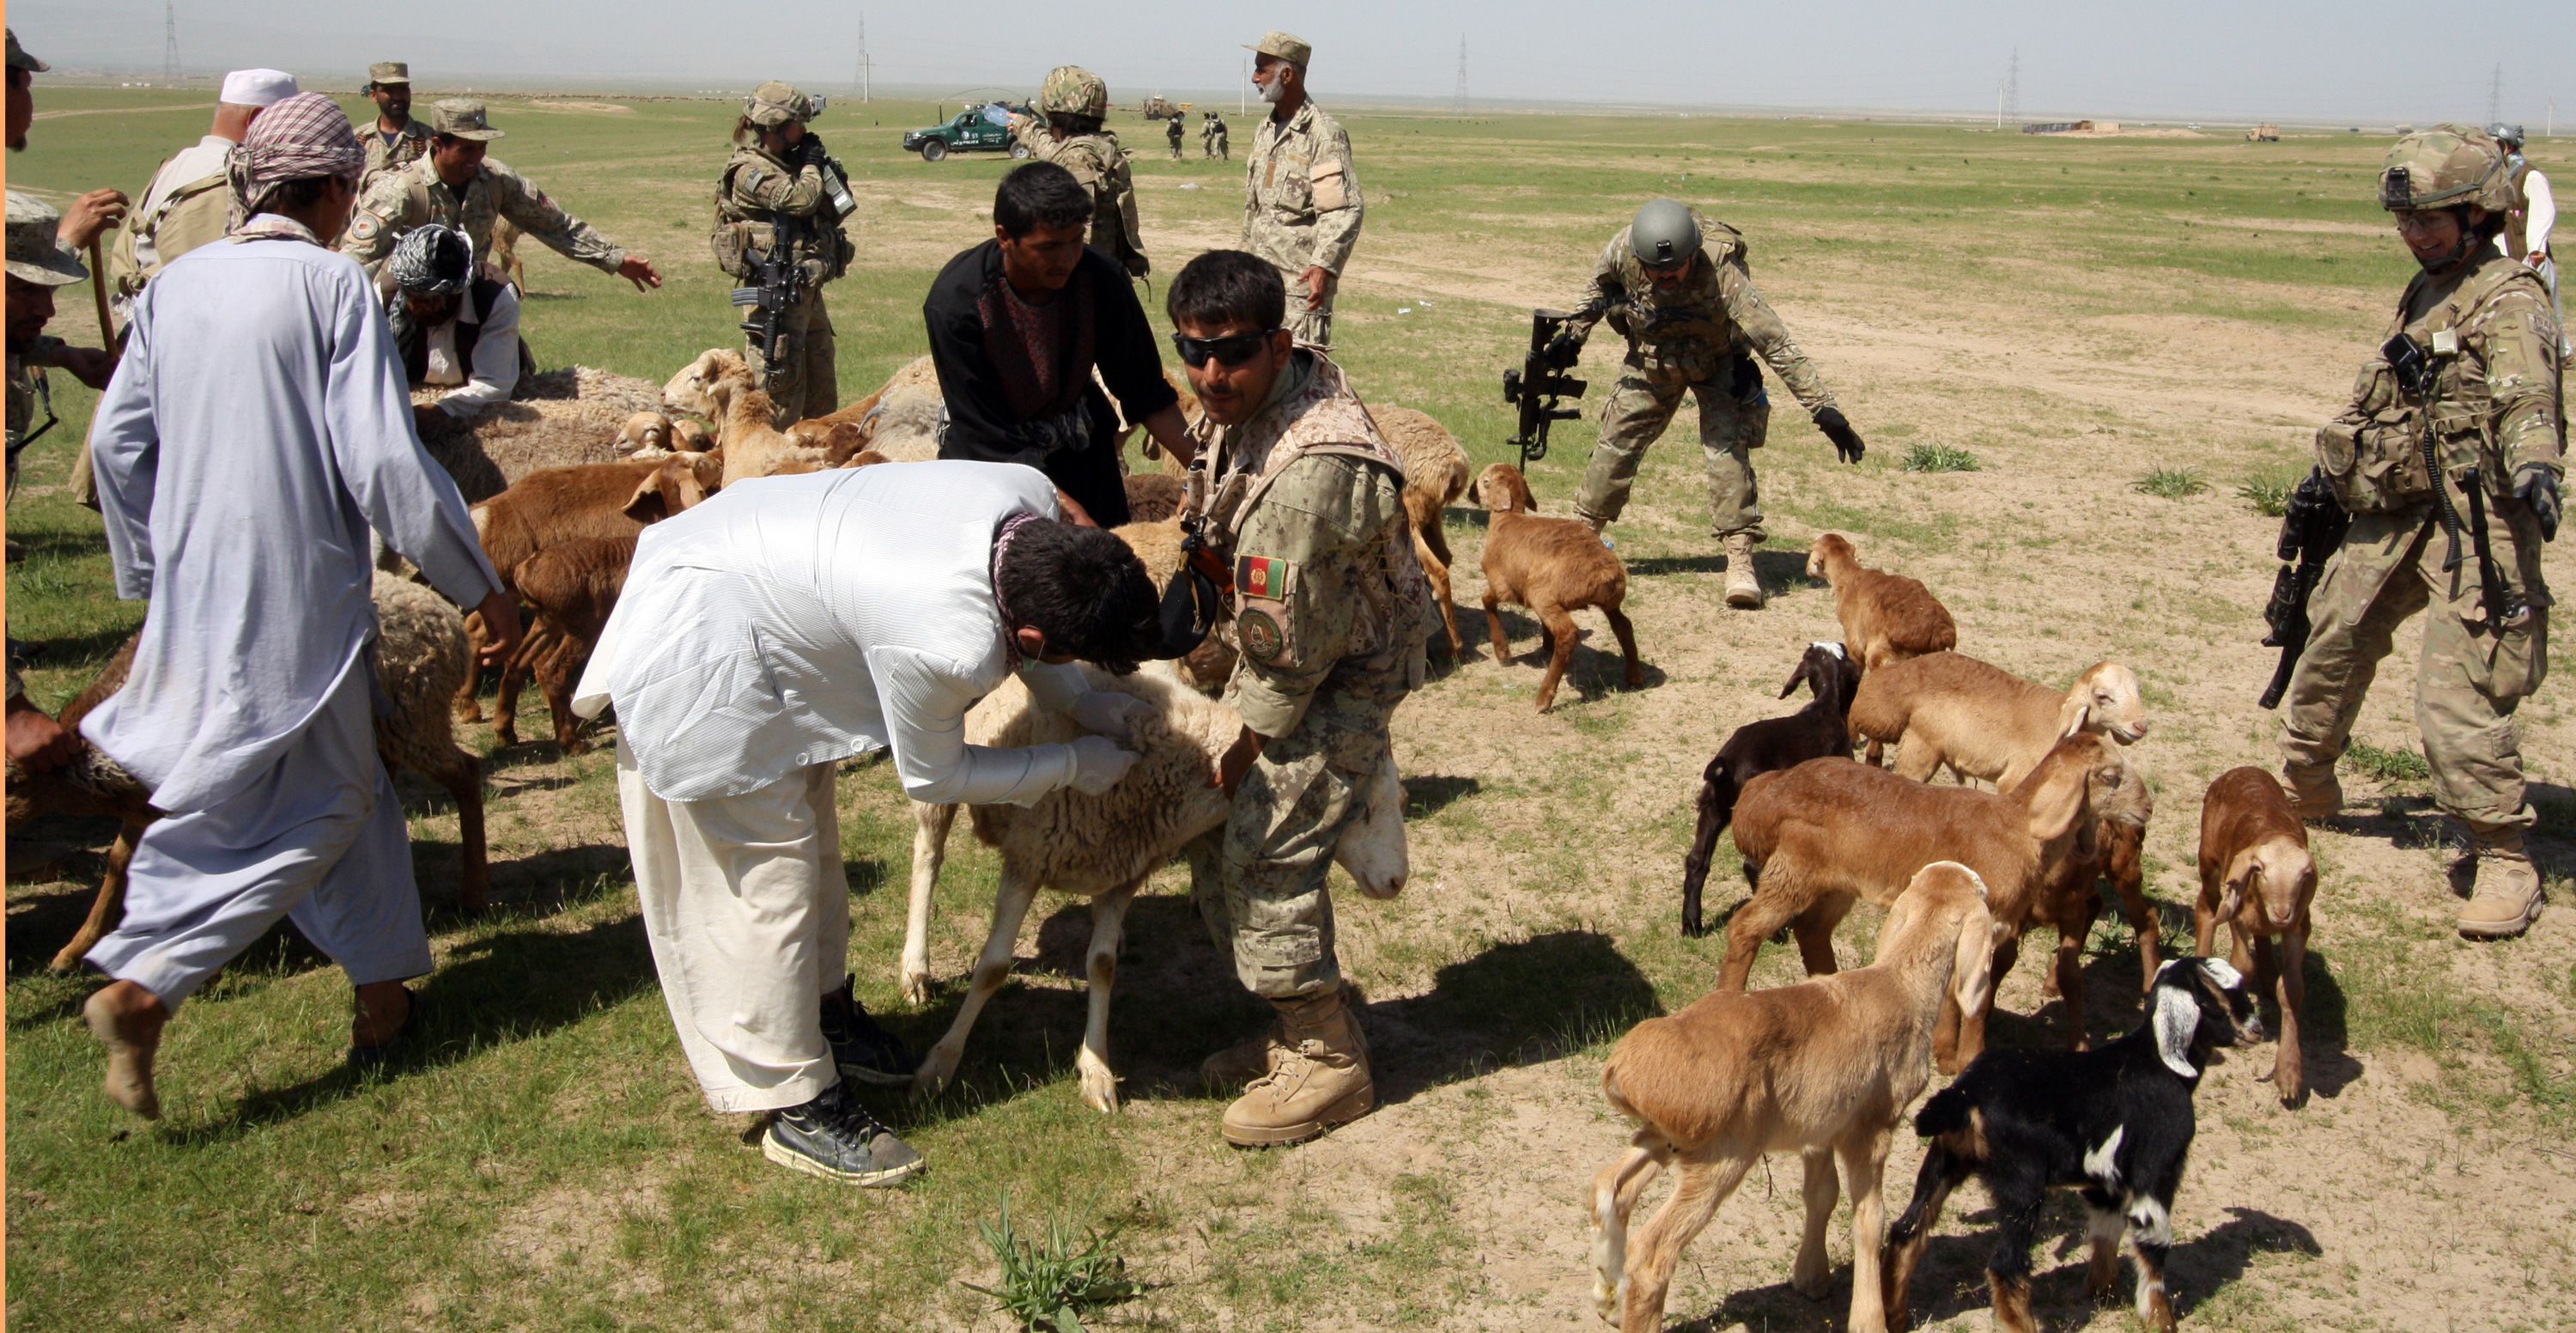 Afghanistan: Guard members assist with large-scale